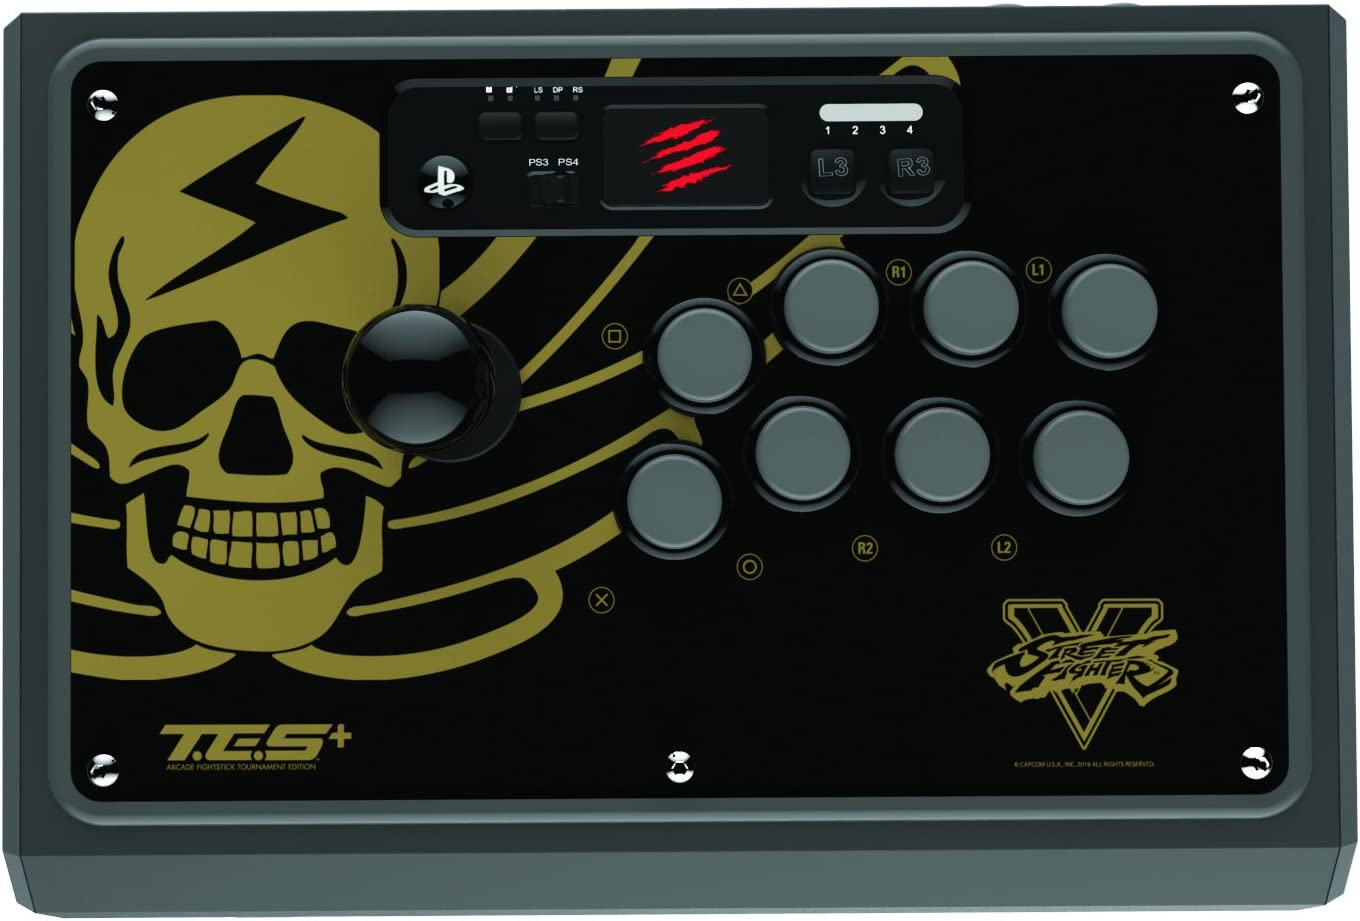 Madcatz - Street Fighter V Arcade Stick Tournament Edition S+: Amazon.es: Videojuegos